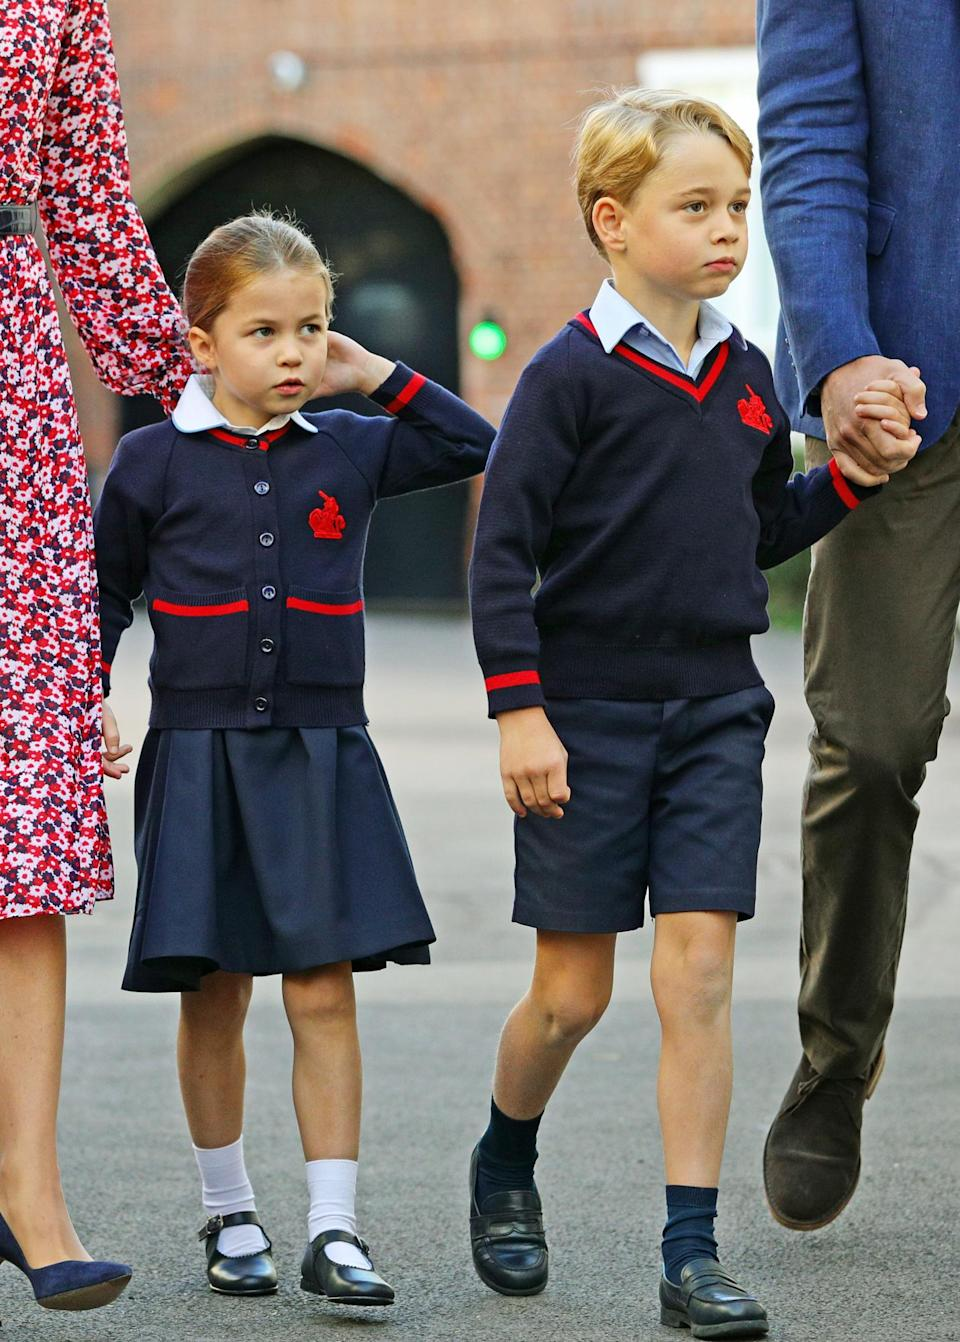 """<p>Like children around the world, Princess Charlotte and Prince George had to adapt to homeschooling — and its challenges.</p> <p>Kate said, """"<a href=""""https://people.com/royals/prince-george-upset-princess-charlotte-homeschool-projects-cooler-kate-middleton/"""" rel=""""nofollow noopener"""" target=""""_blank"""" data-ylk=""""slk:George gets very upset"""" class=""""link rapid-noclick-resp"""">George gets very upset</a> because he just wants to do all of Charlotte's projects. Spider sandwiches are far cooler than literacy work!""""</p>"""